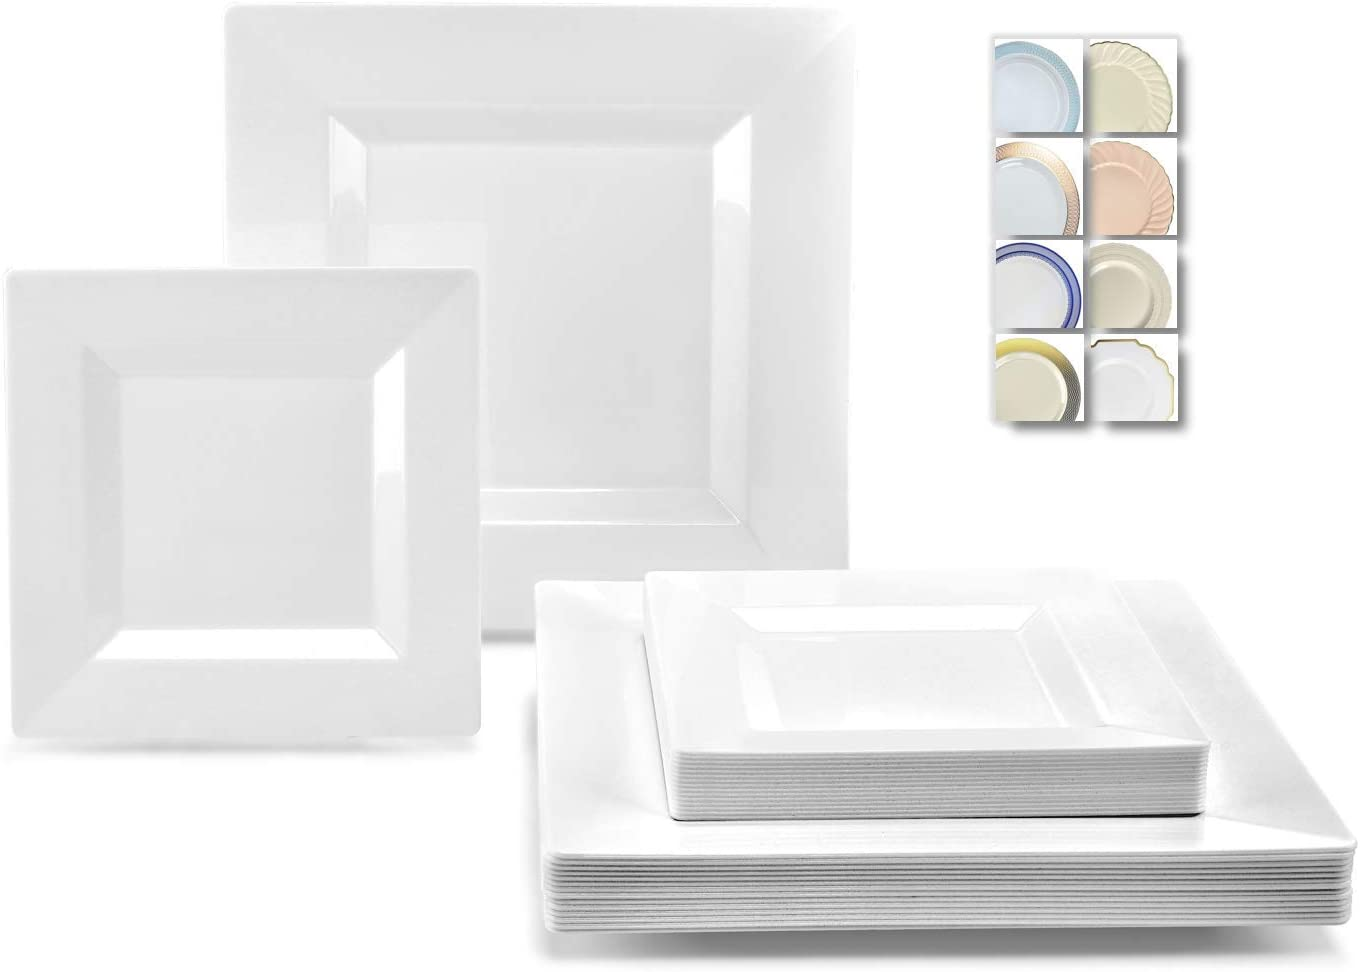 OCCASIONS 240 Plates Pack,(120 Guests) Wedding Party Square Disposable Plastic Plates Set -120 x 9.5'' Dinner + 120 x 6.5'' Dessert (Square White) 51DAmijM8qL